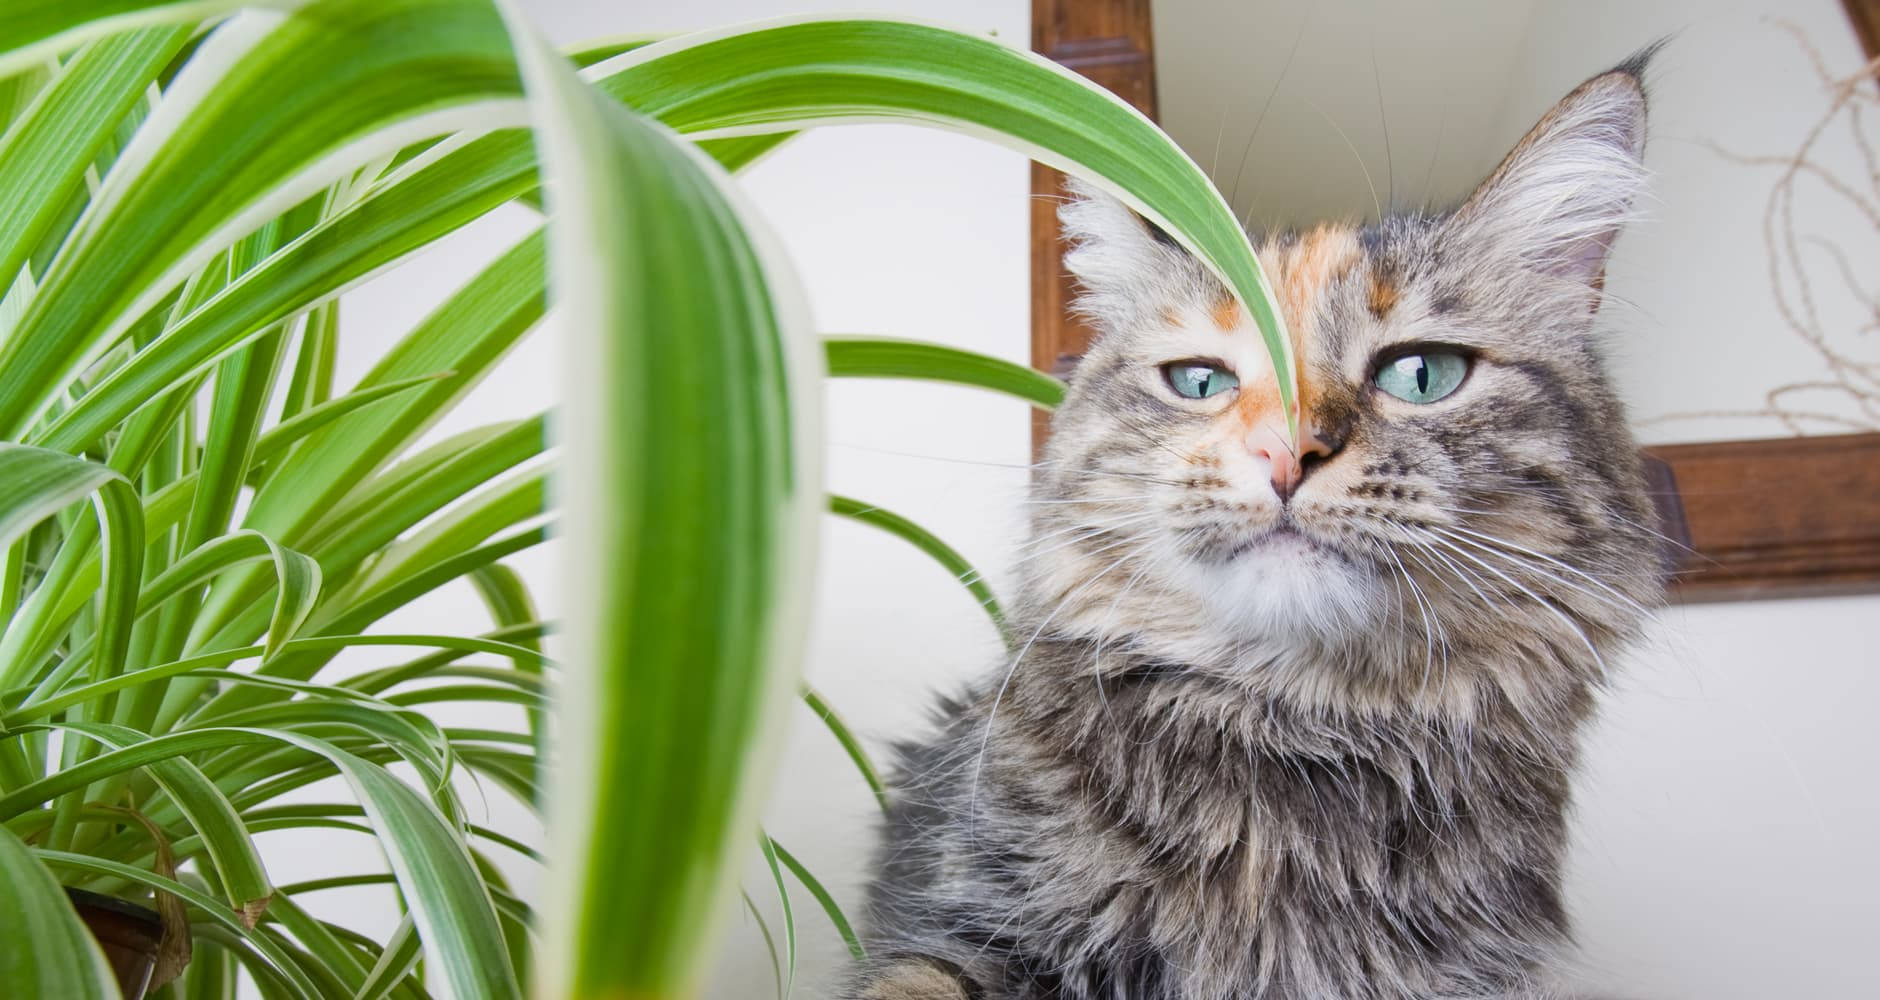 30 Common Houseplants From A-Z That Are Toxic To Petsimage preview